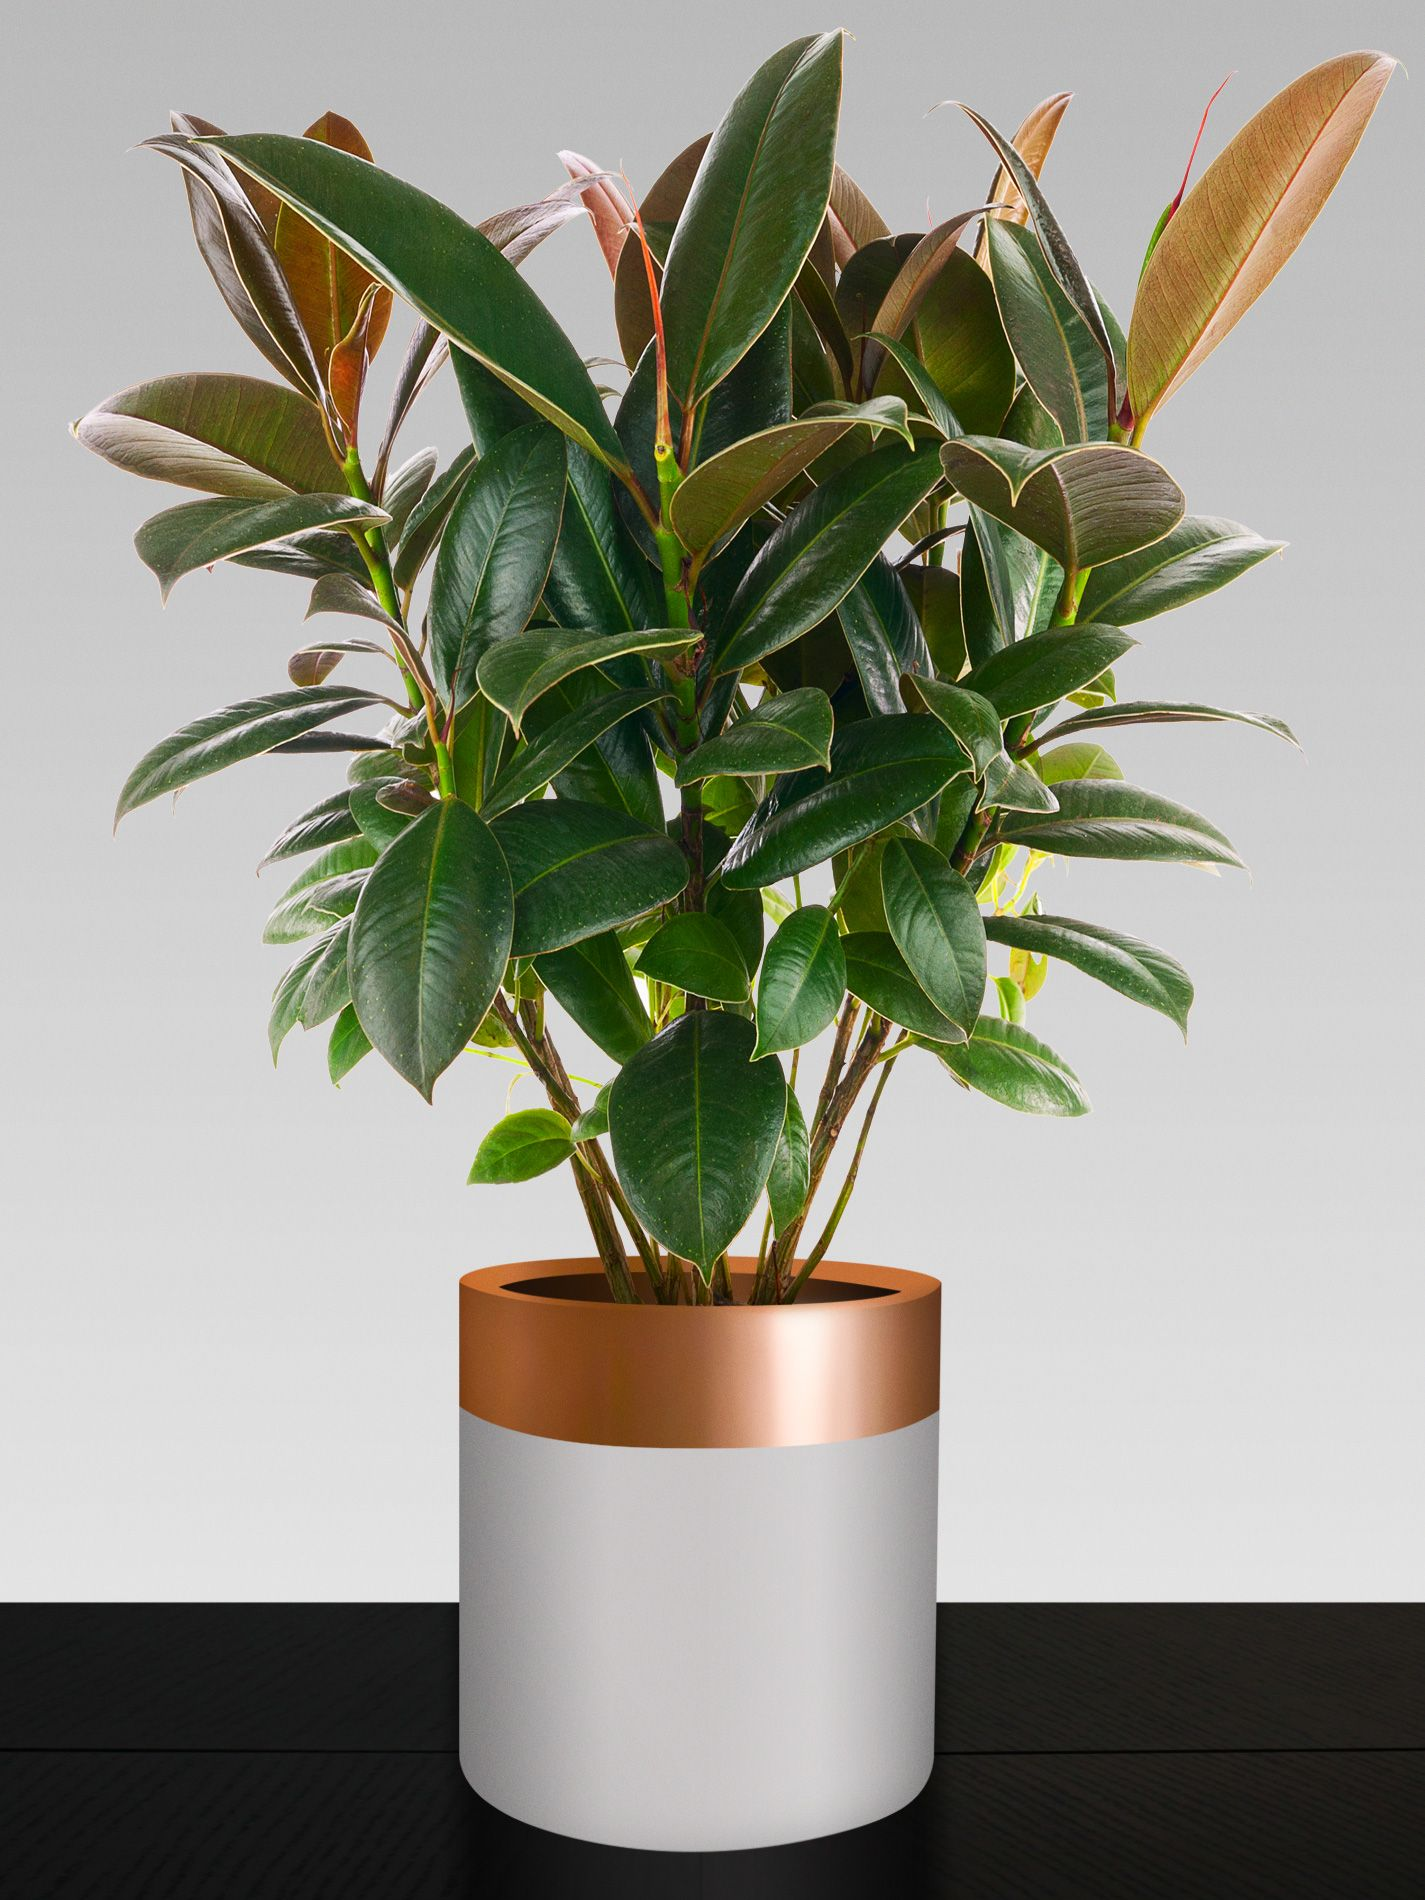 These modern lightweight cylinder shaped fibreglass pots are uniquely designed and custom painted, perfect for indoor or outdoor use. All pots are finished in a gloss UV resistant clear coat, which will protect them from the harsh outdoor elements.